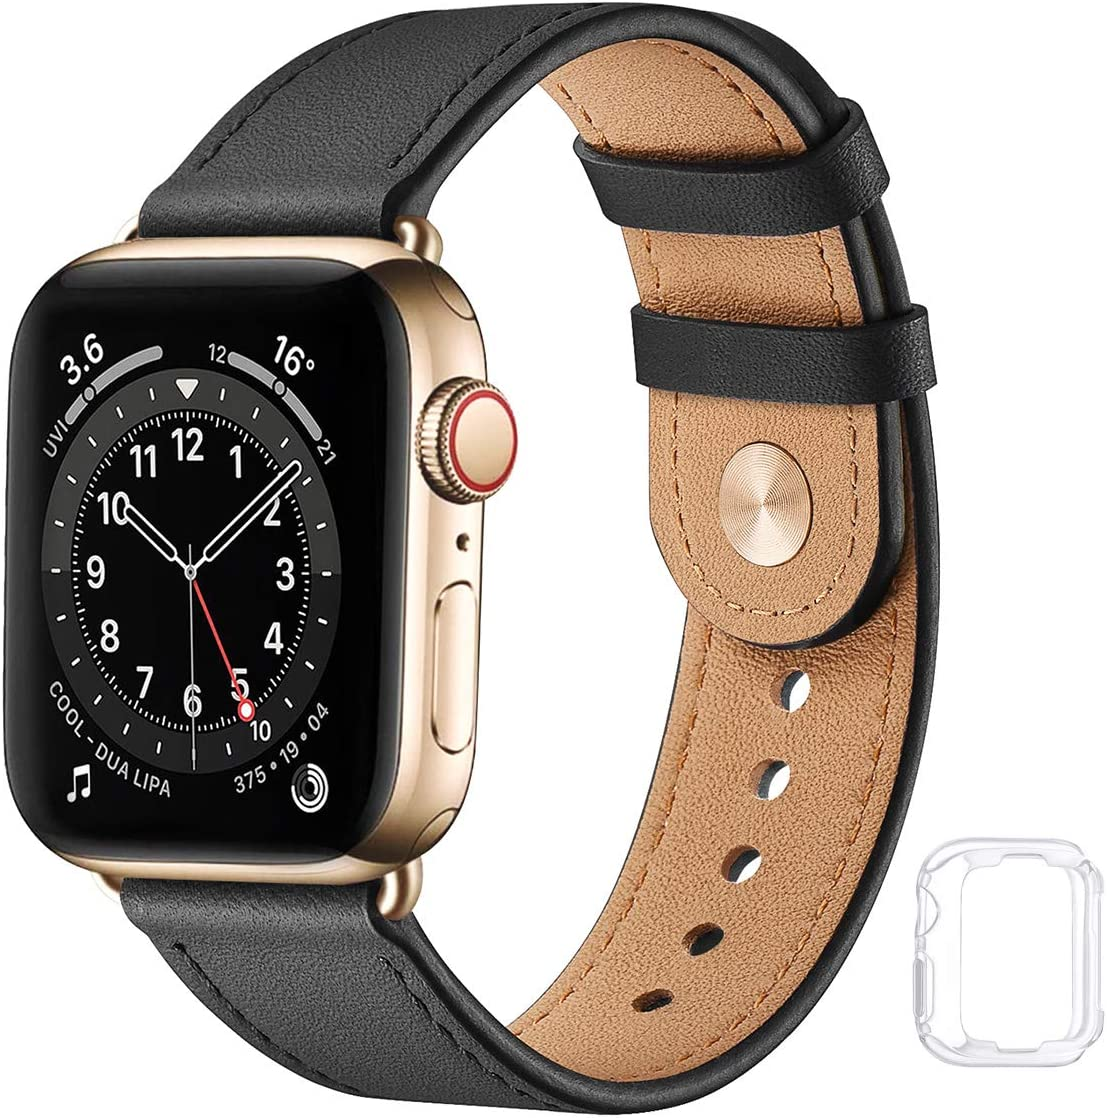 Soft Leather Watch Bands Compatible with Apple Watch Band 38mm 40mm 42mm 44mm, Special Watch Band Replacement Strap for Women Men for iWatch SE Series 6 5 4 3 2 1 (Black with Gold, 38MM/40MM)